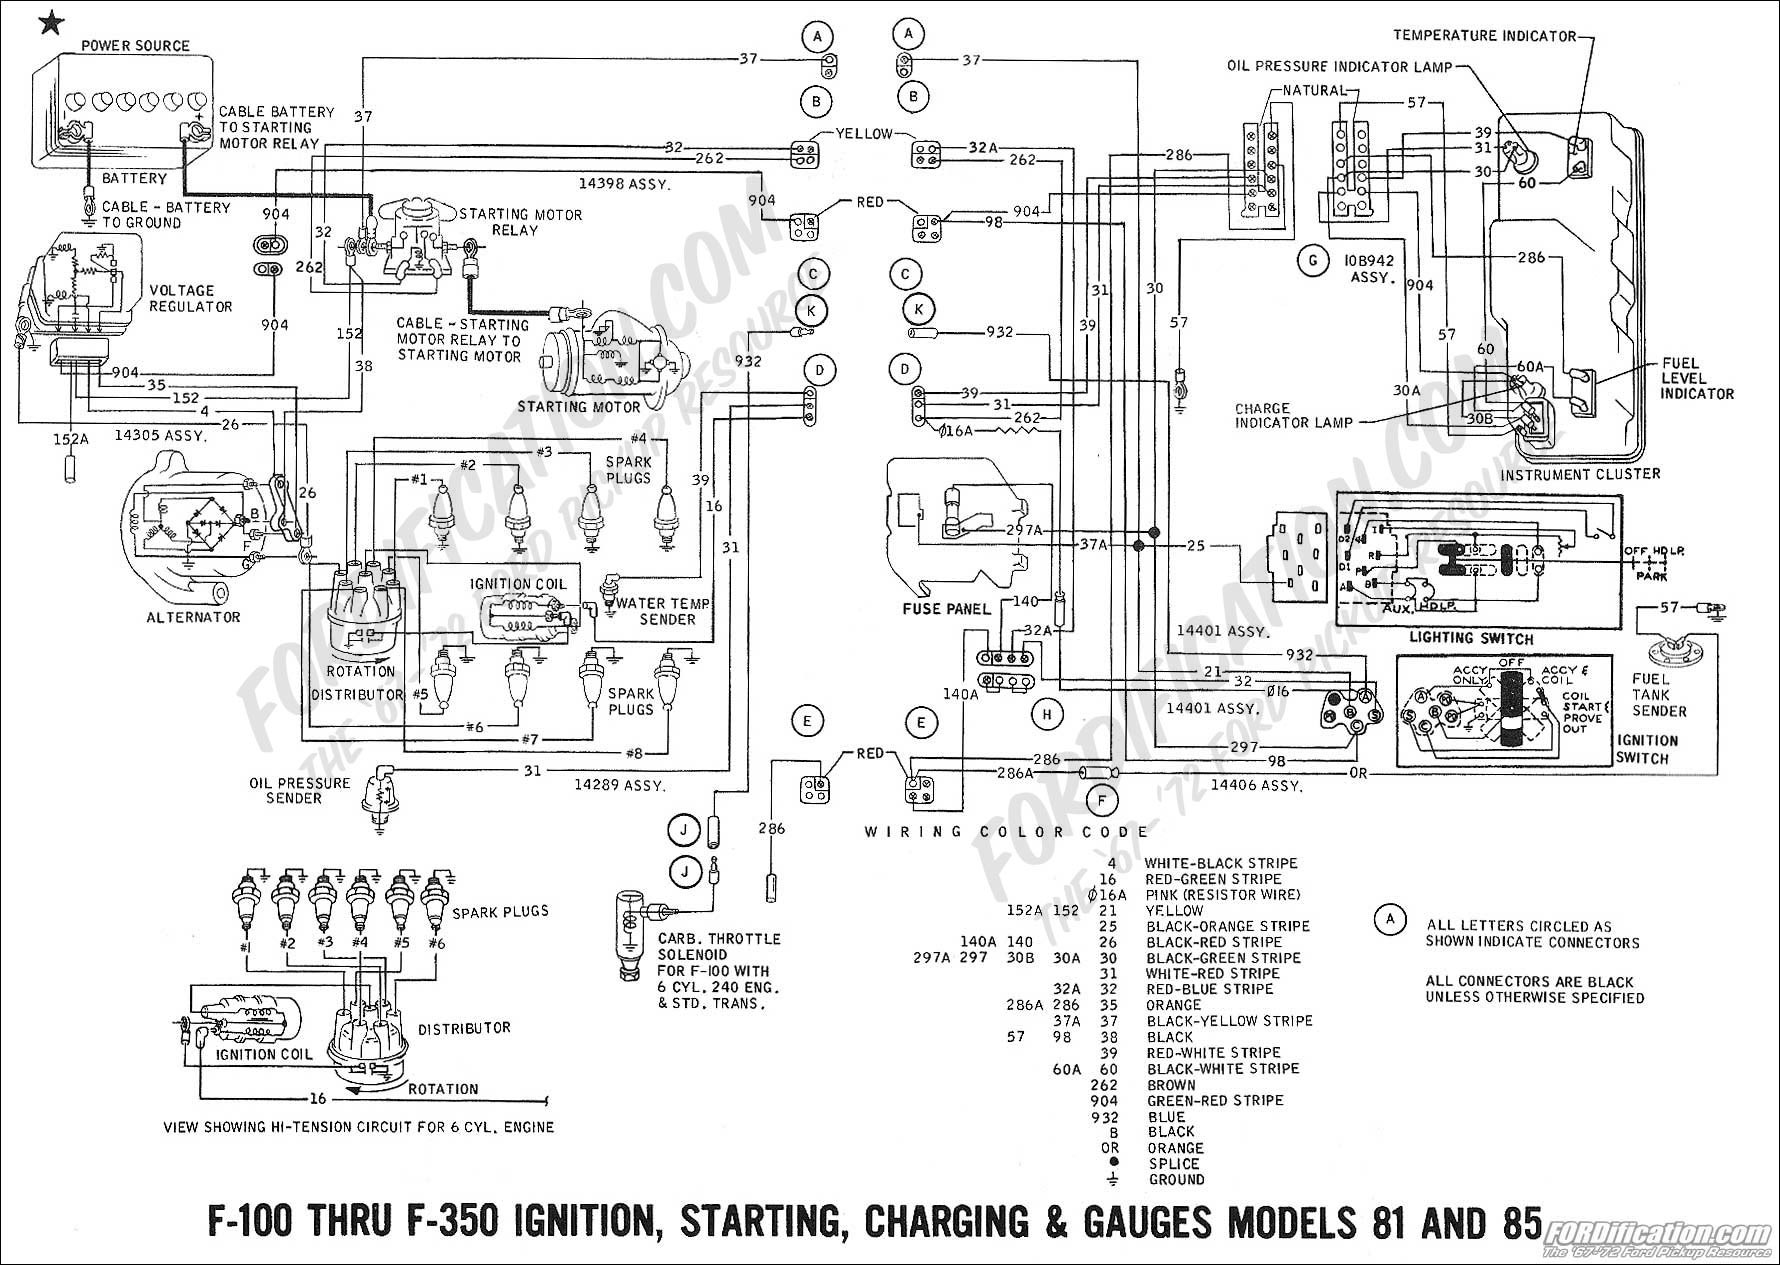 1983 Chevy Truck Wiring Diagram 1969 ford F100 Wiring Diagram Wellread Of 1983 Chevy Truck Wiring Diagram